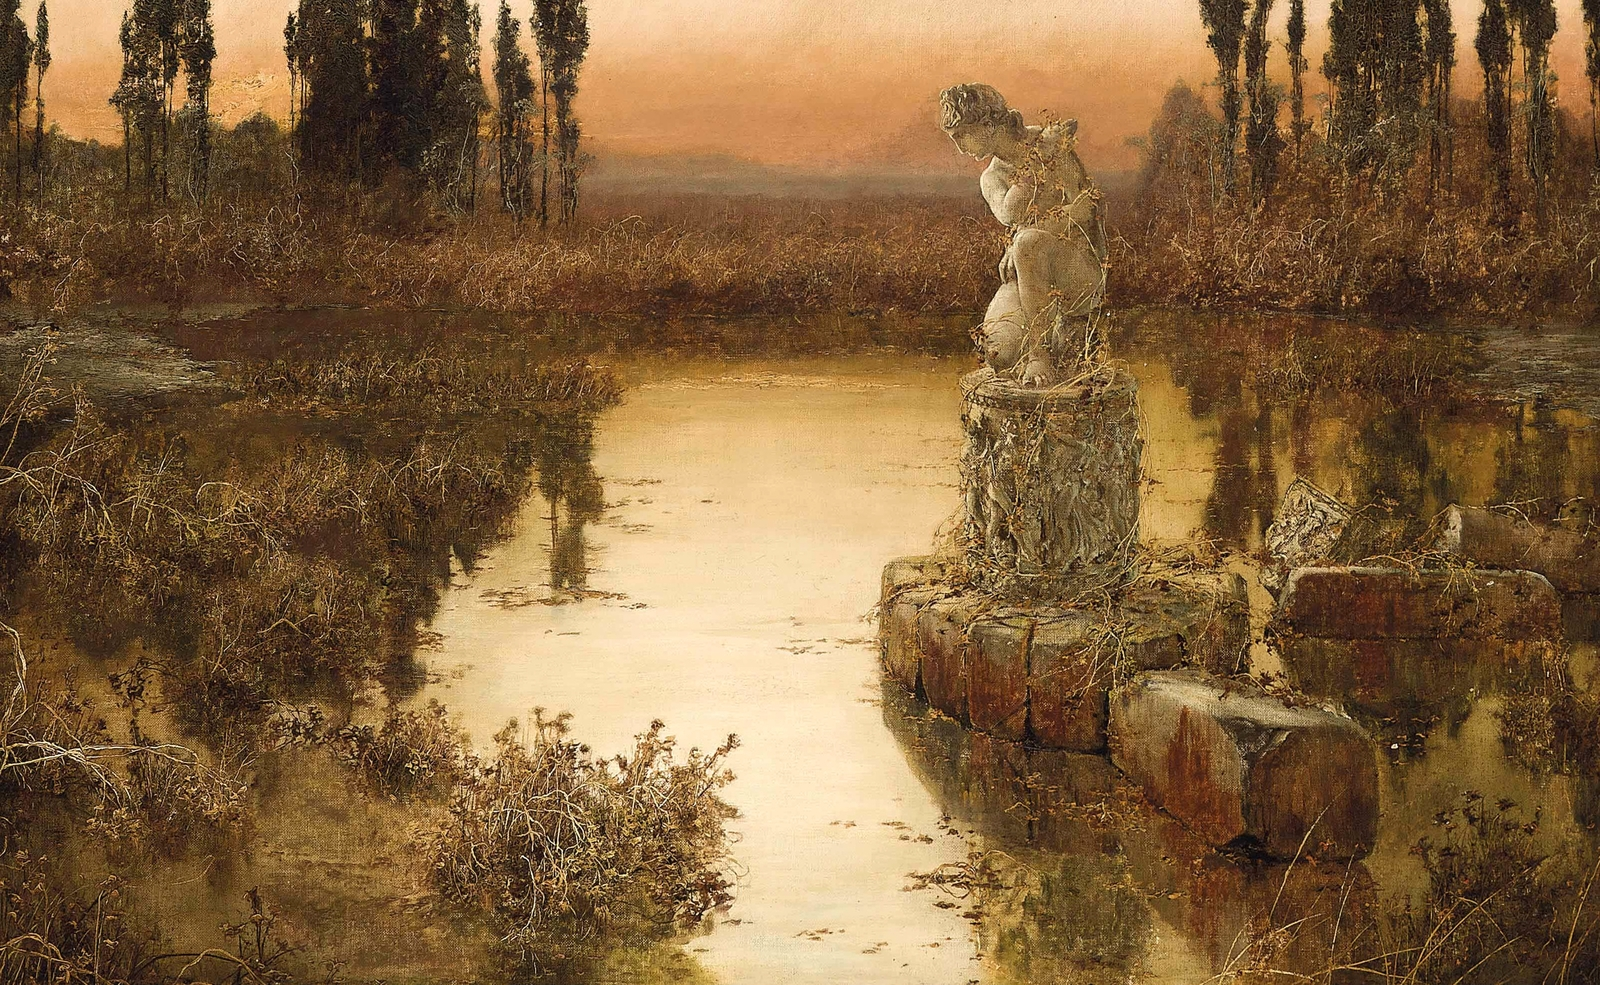 Enrique  Serra  y  Auque  A  Lakeside  at  Dusk